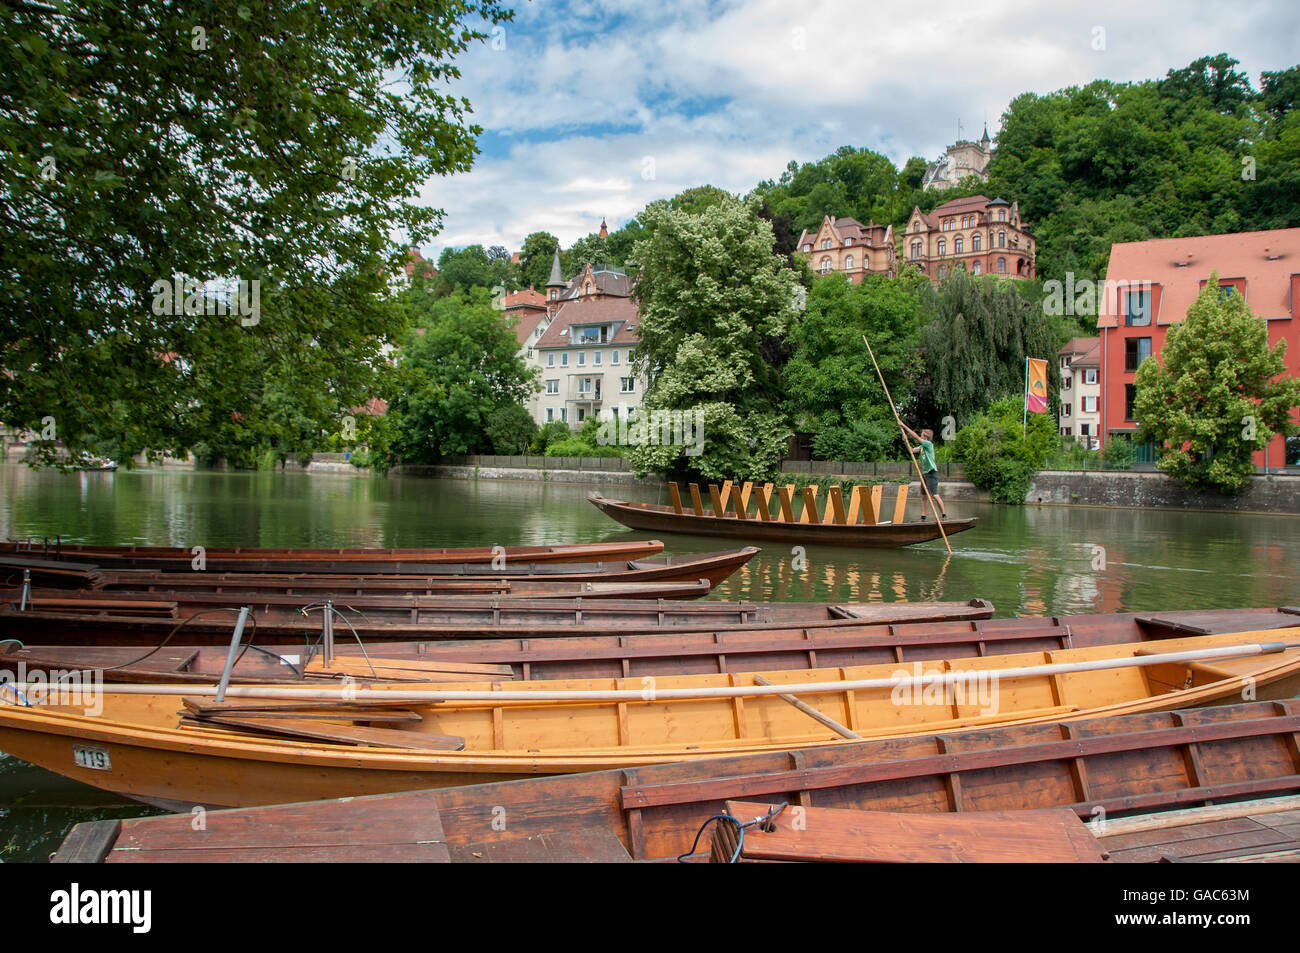 Punting on the Neckar river in Tübingen on a summer's day. Beautiful pictoresque old town in the background. - Stock Image